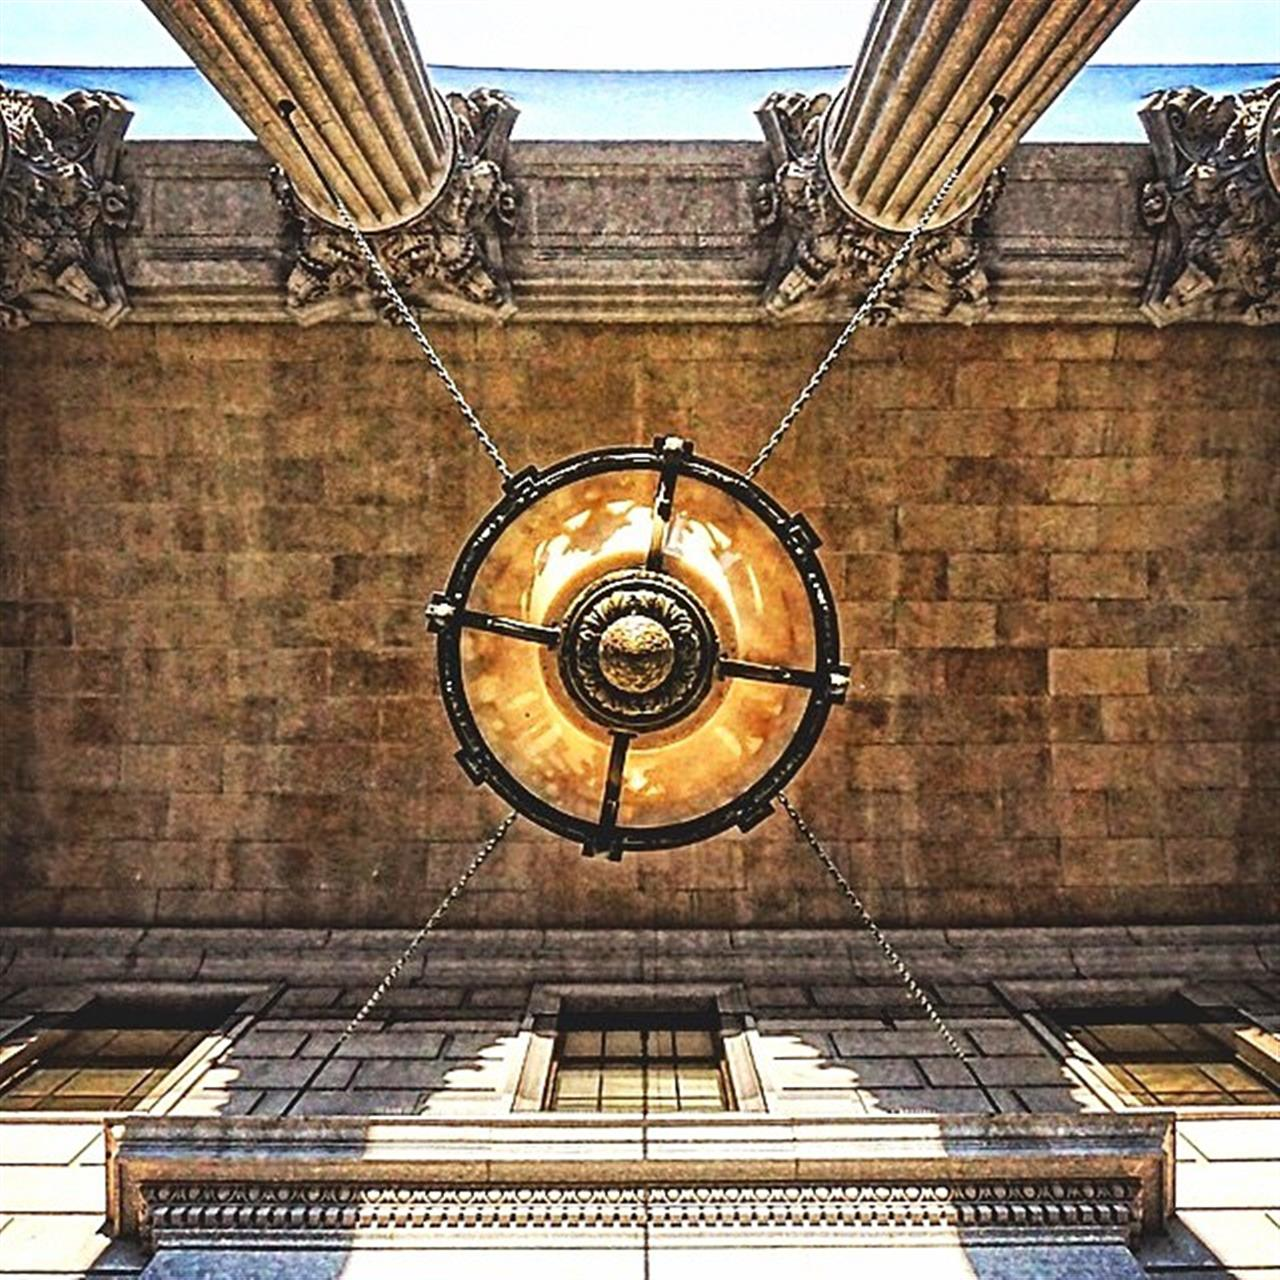 Look Up! (Photo from @sarahandnewyorkcity)